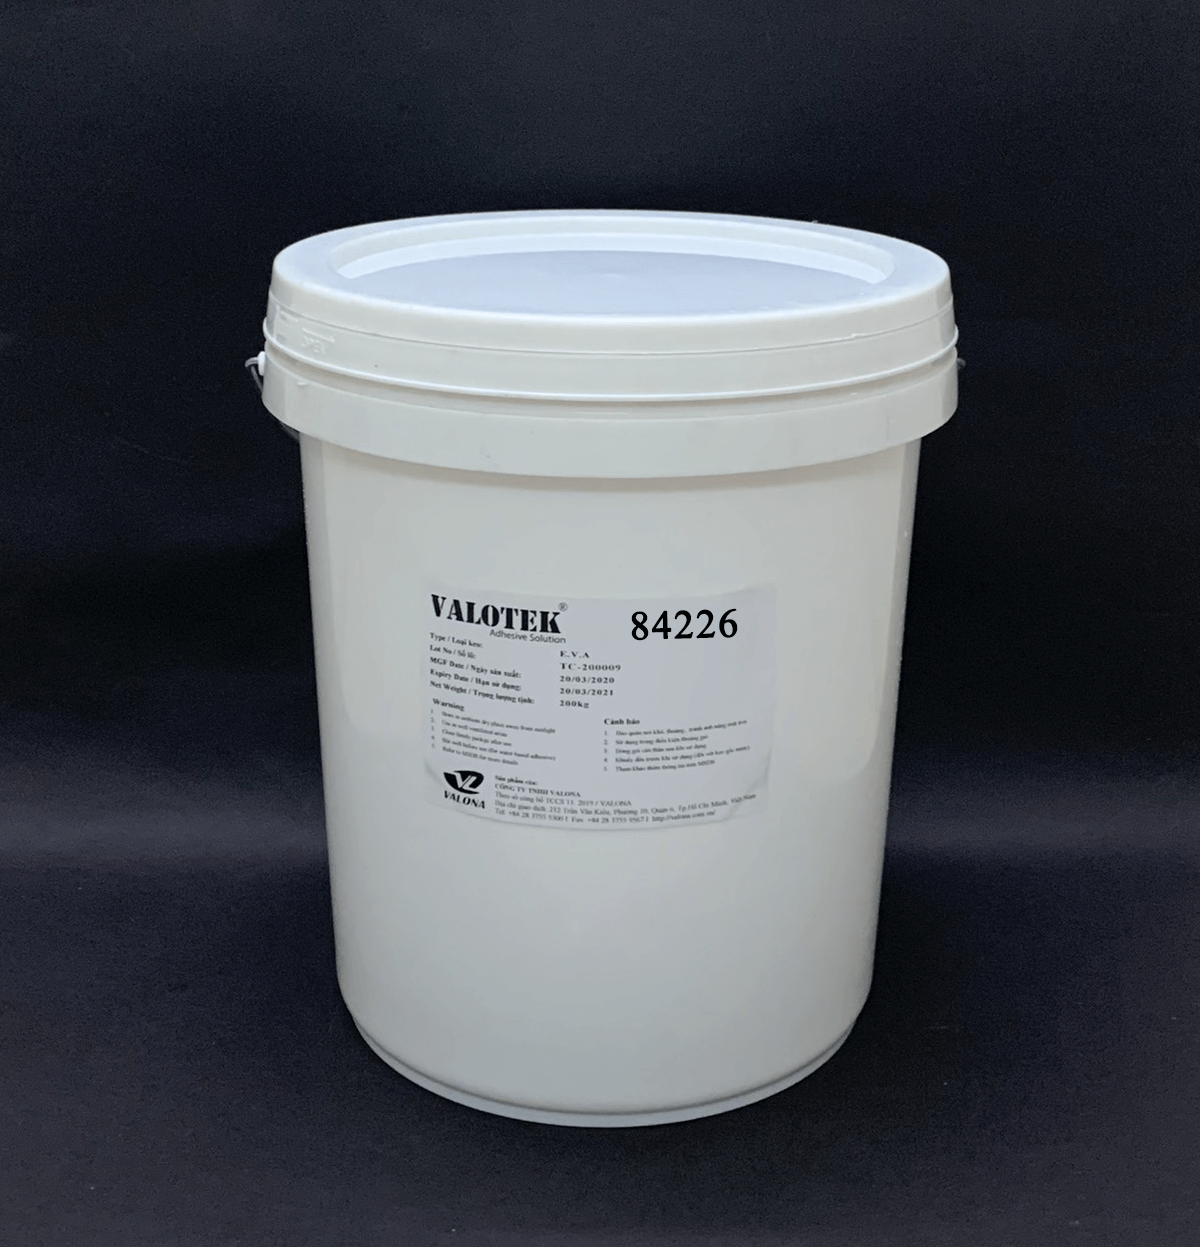 WATER-BASED GLUE FOR LABEL SEALING VALOTEK 84226